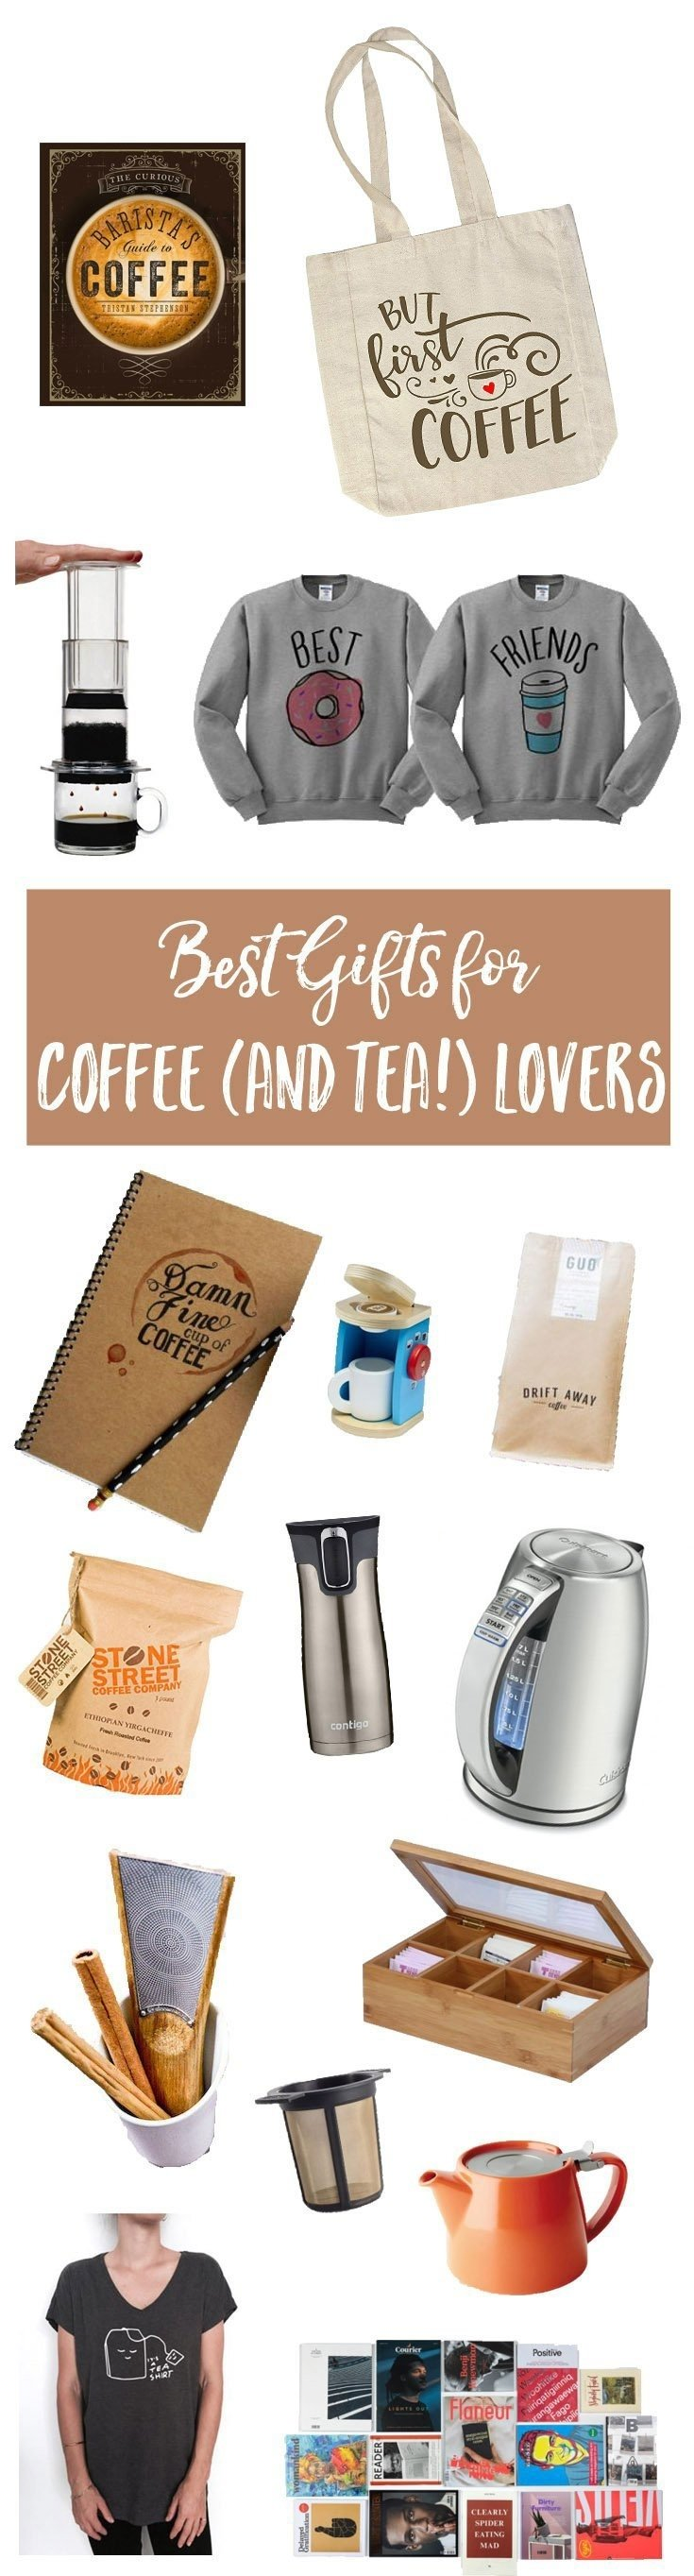 10 Ideal Gift Ideas For Tea Lovers best gifts for the coffee lover tea lover chocolate zucchini 2020